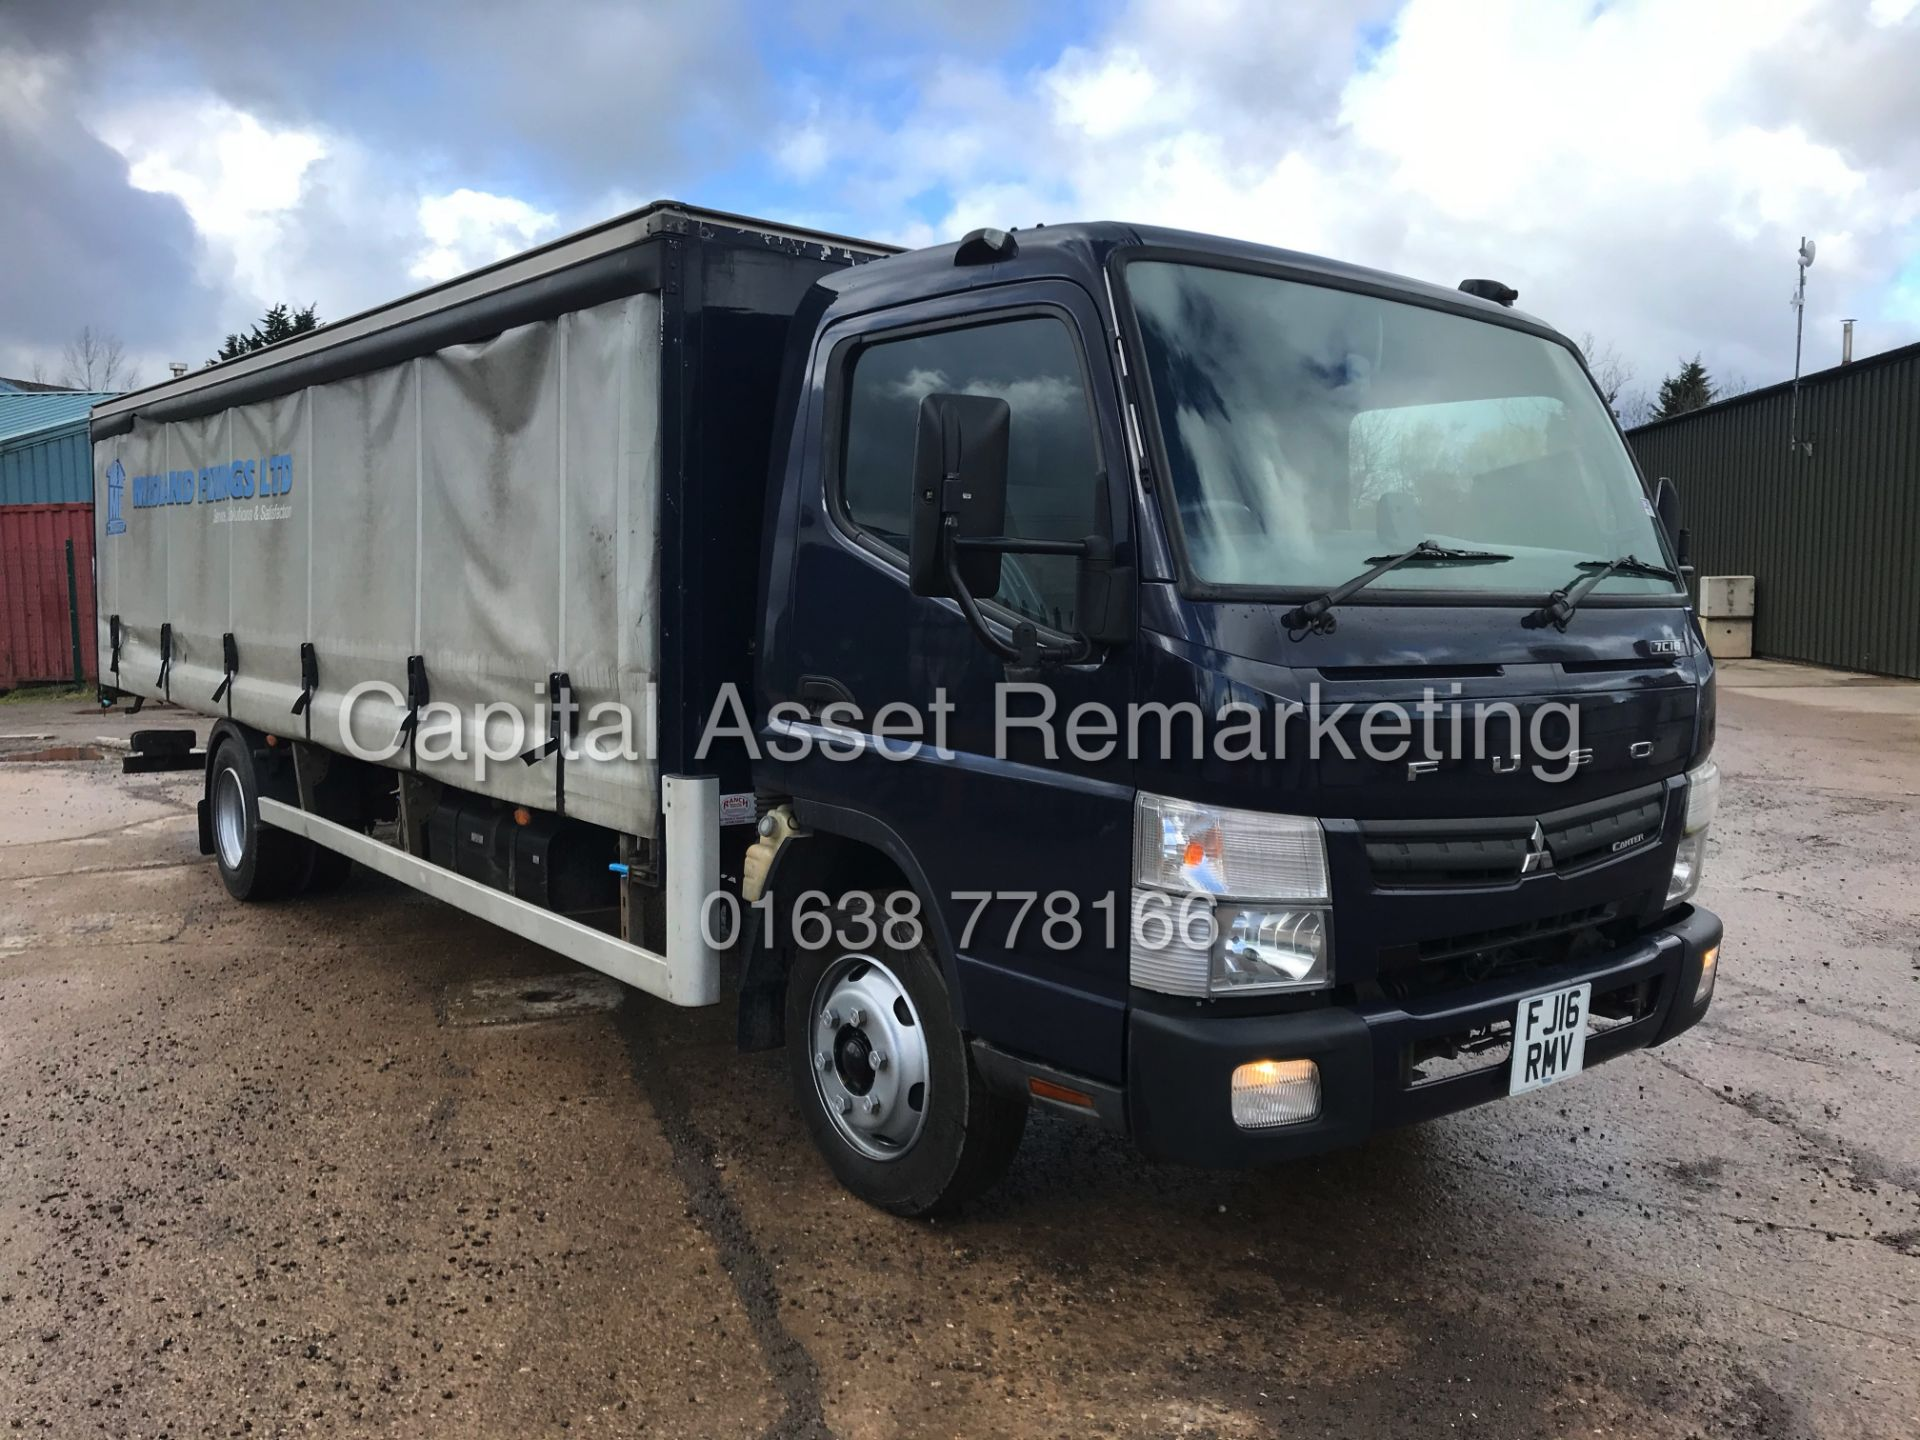 (ON SALE) MITSUBISHI FUSO CANTER 7C18 (16 REG) 1 OWNER *EURO 6* AD-BLUE - 4 WAY CAMERA SYSTEM - Image 5 of 20